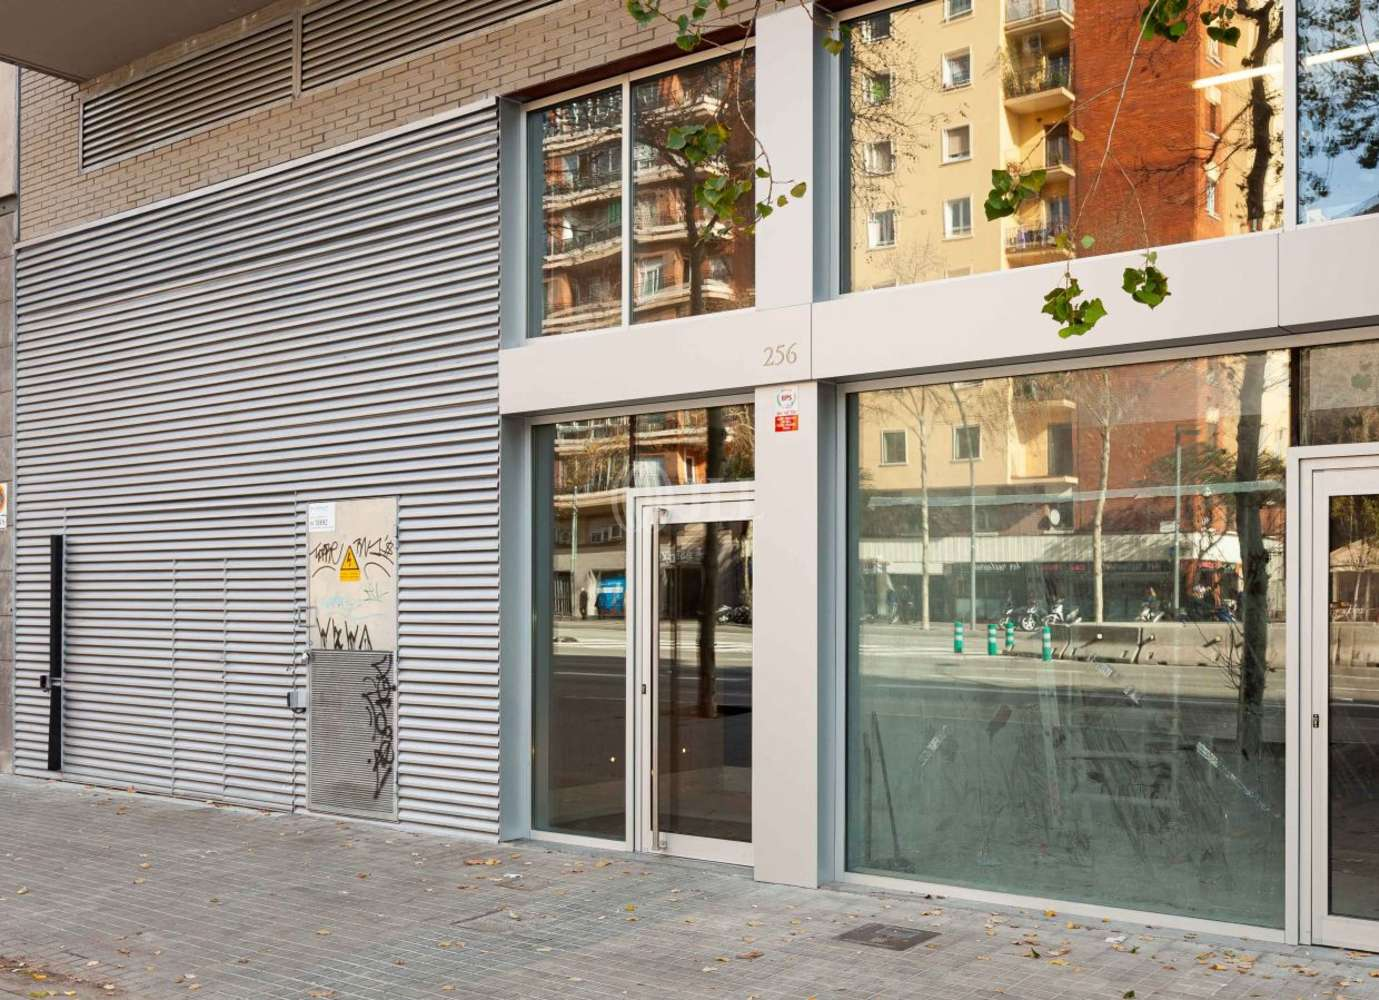 Local comercial Barcelona, 08027 - MERIDIANA 256